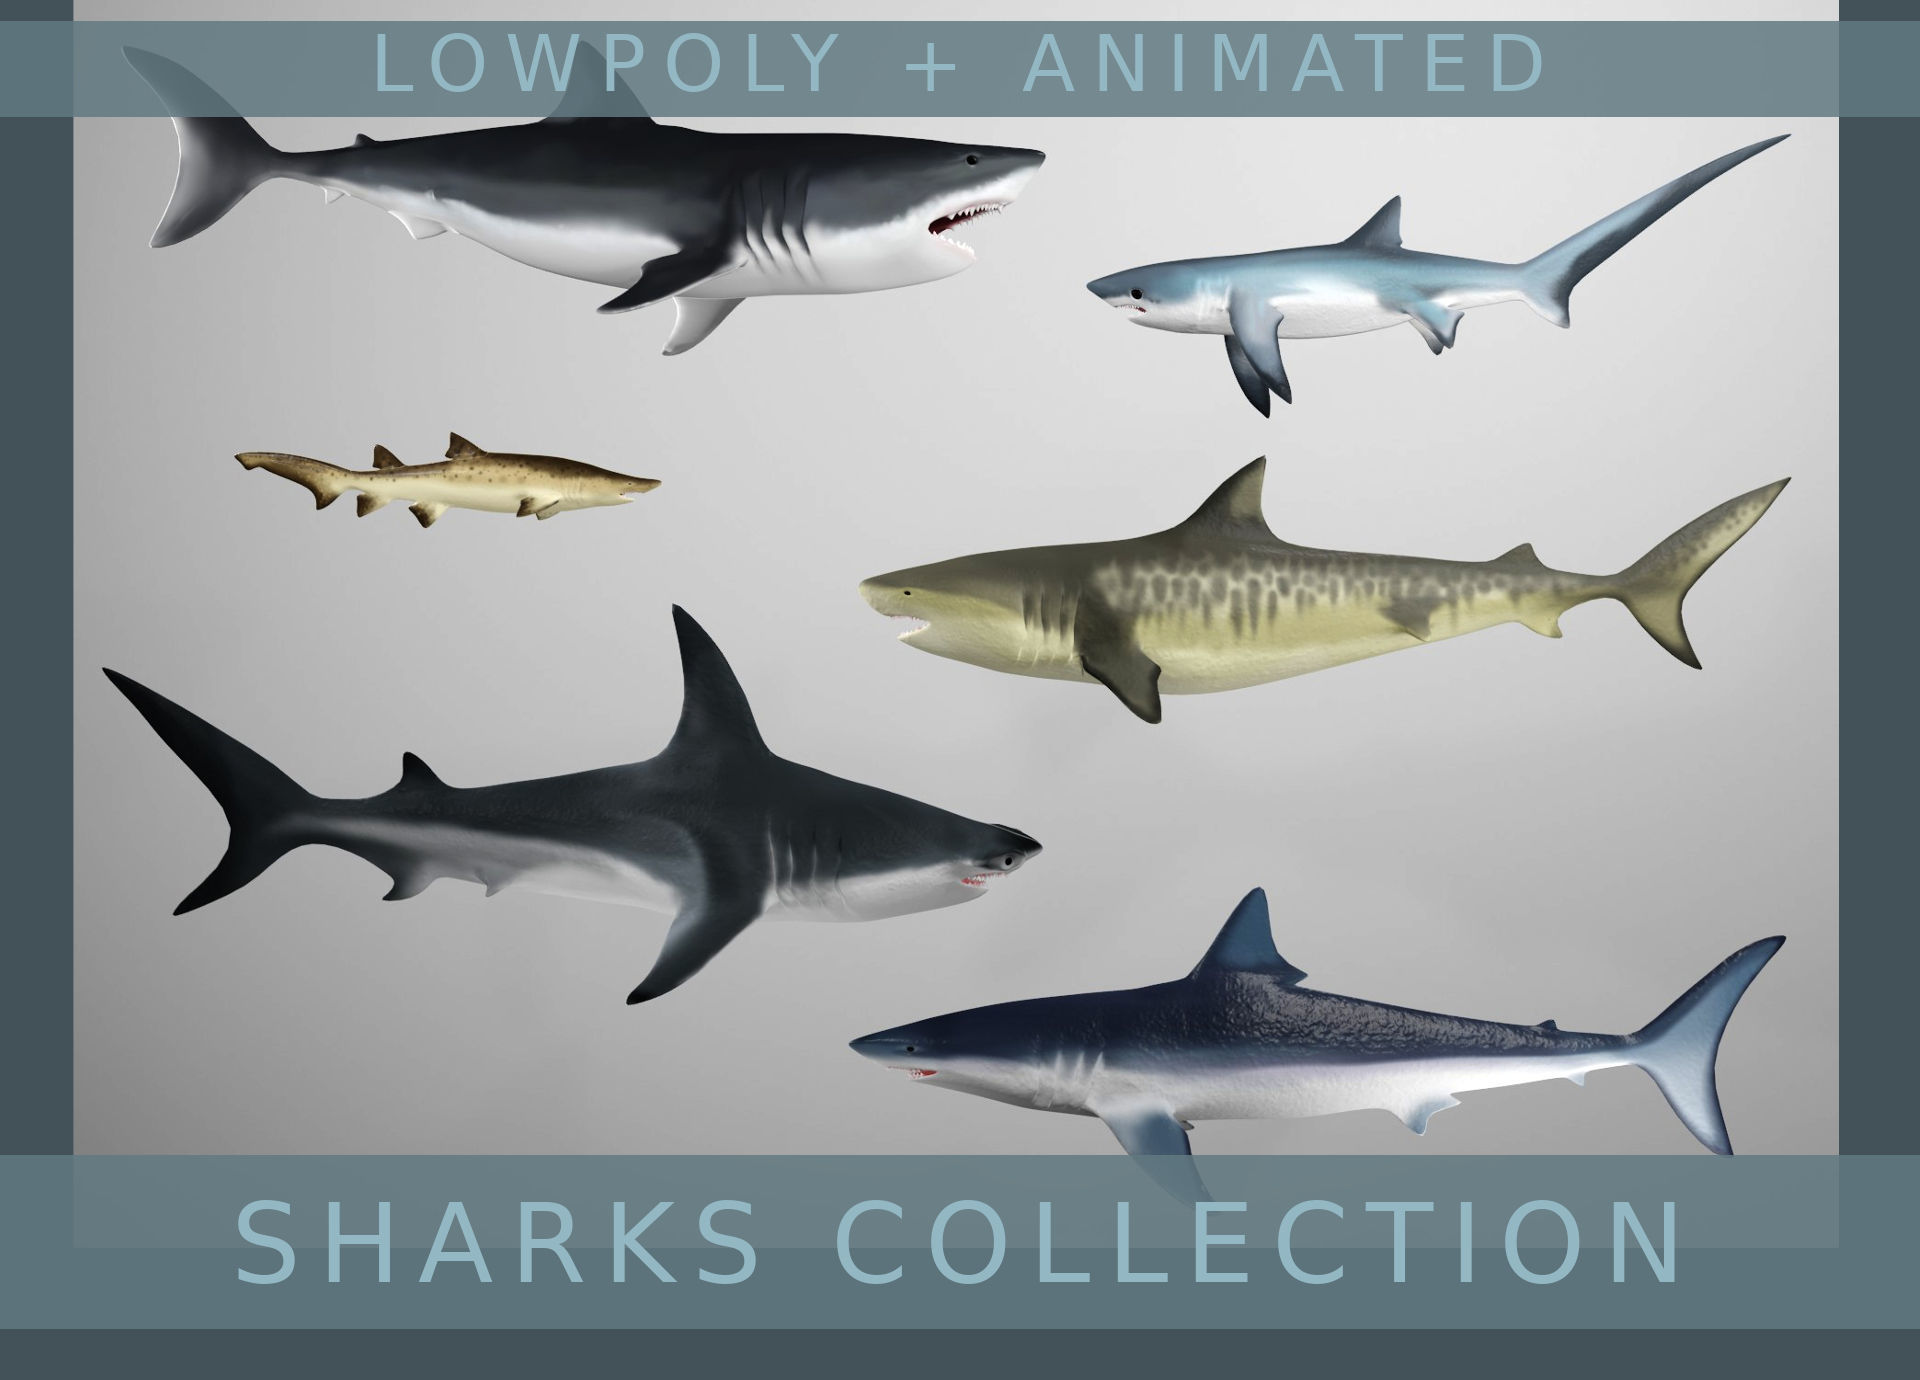 Lowpoly Animated Shark Collection